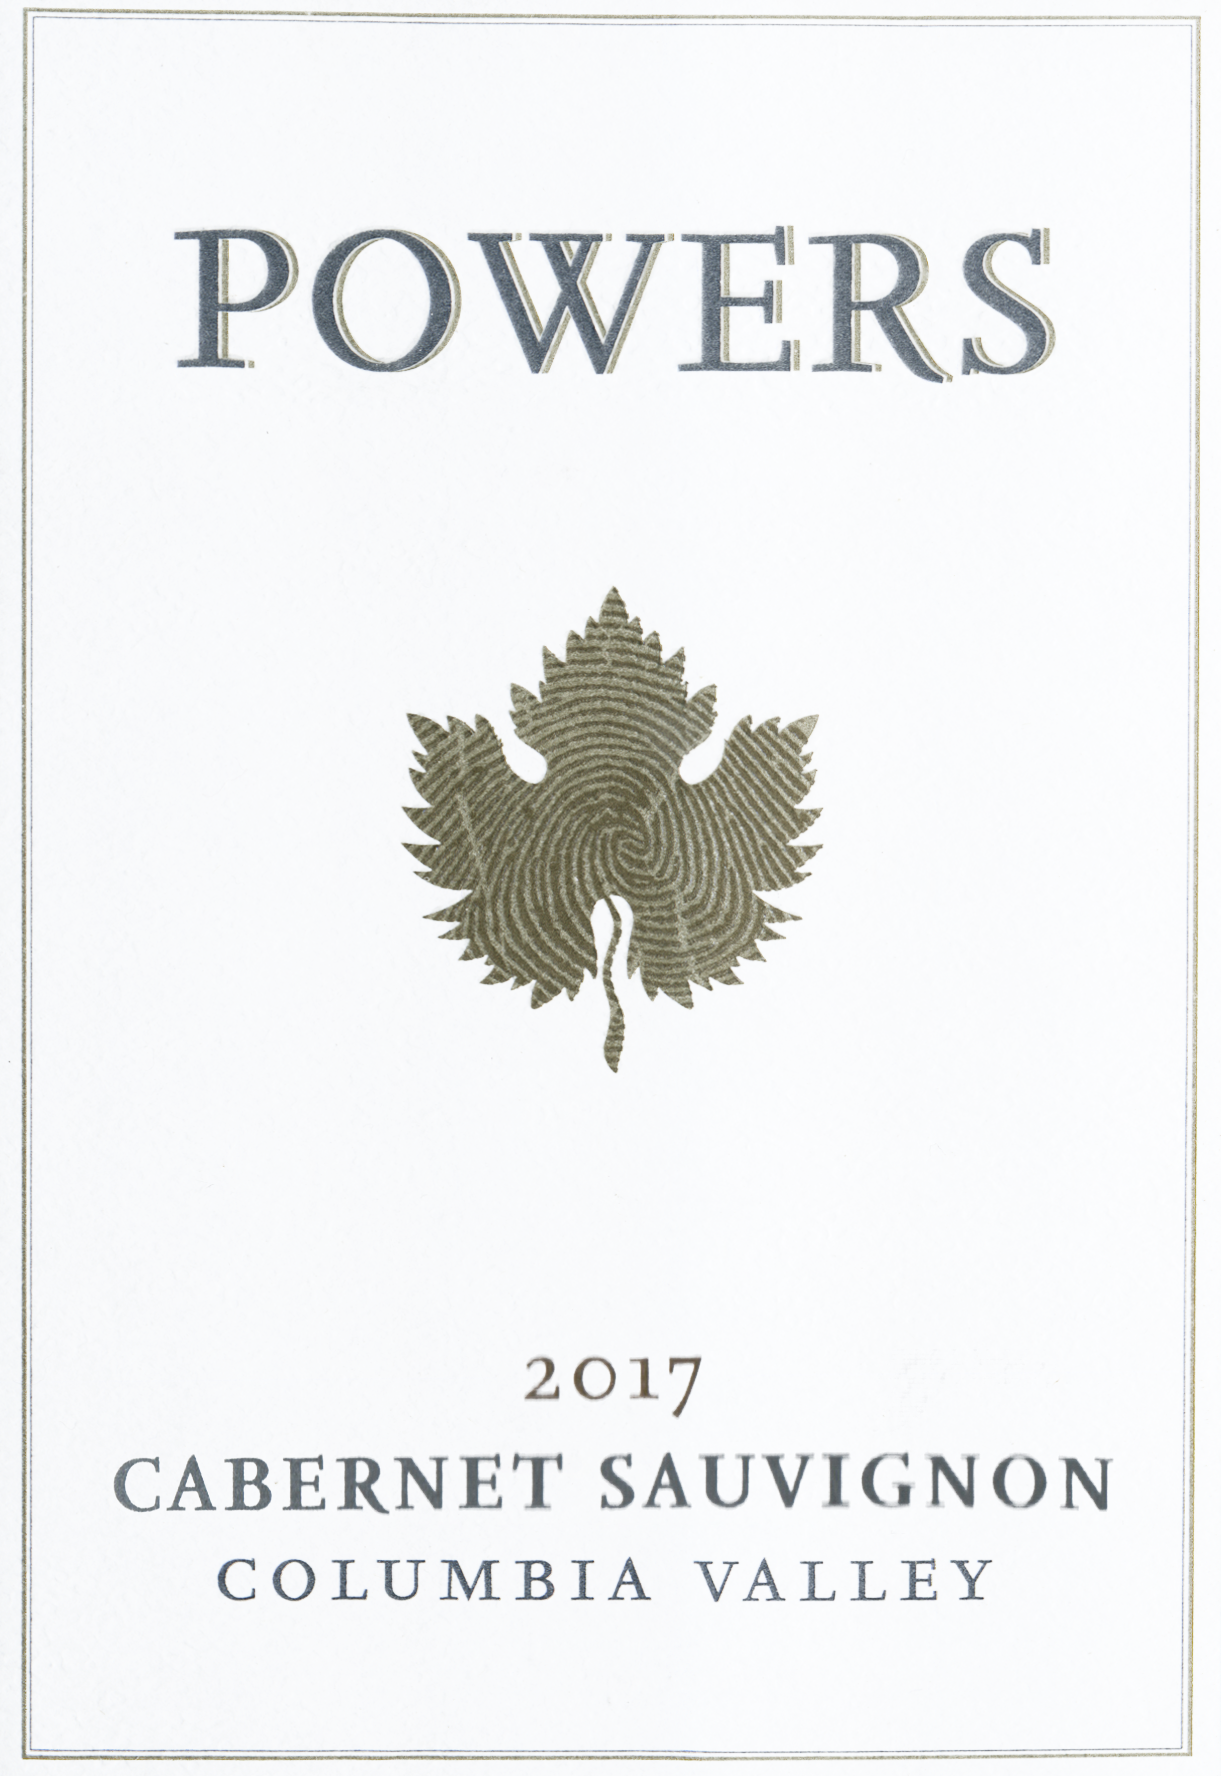 Powers Cabernet Sauvignon 2017